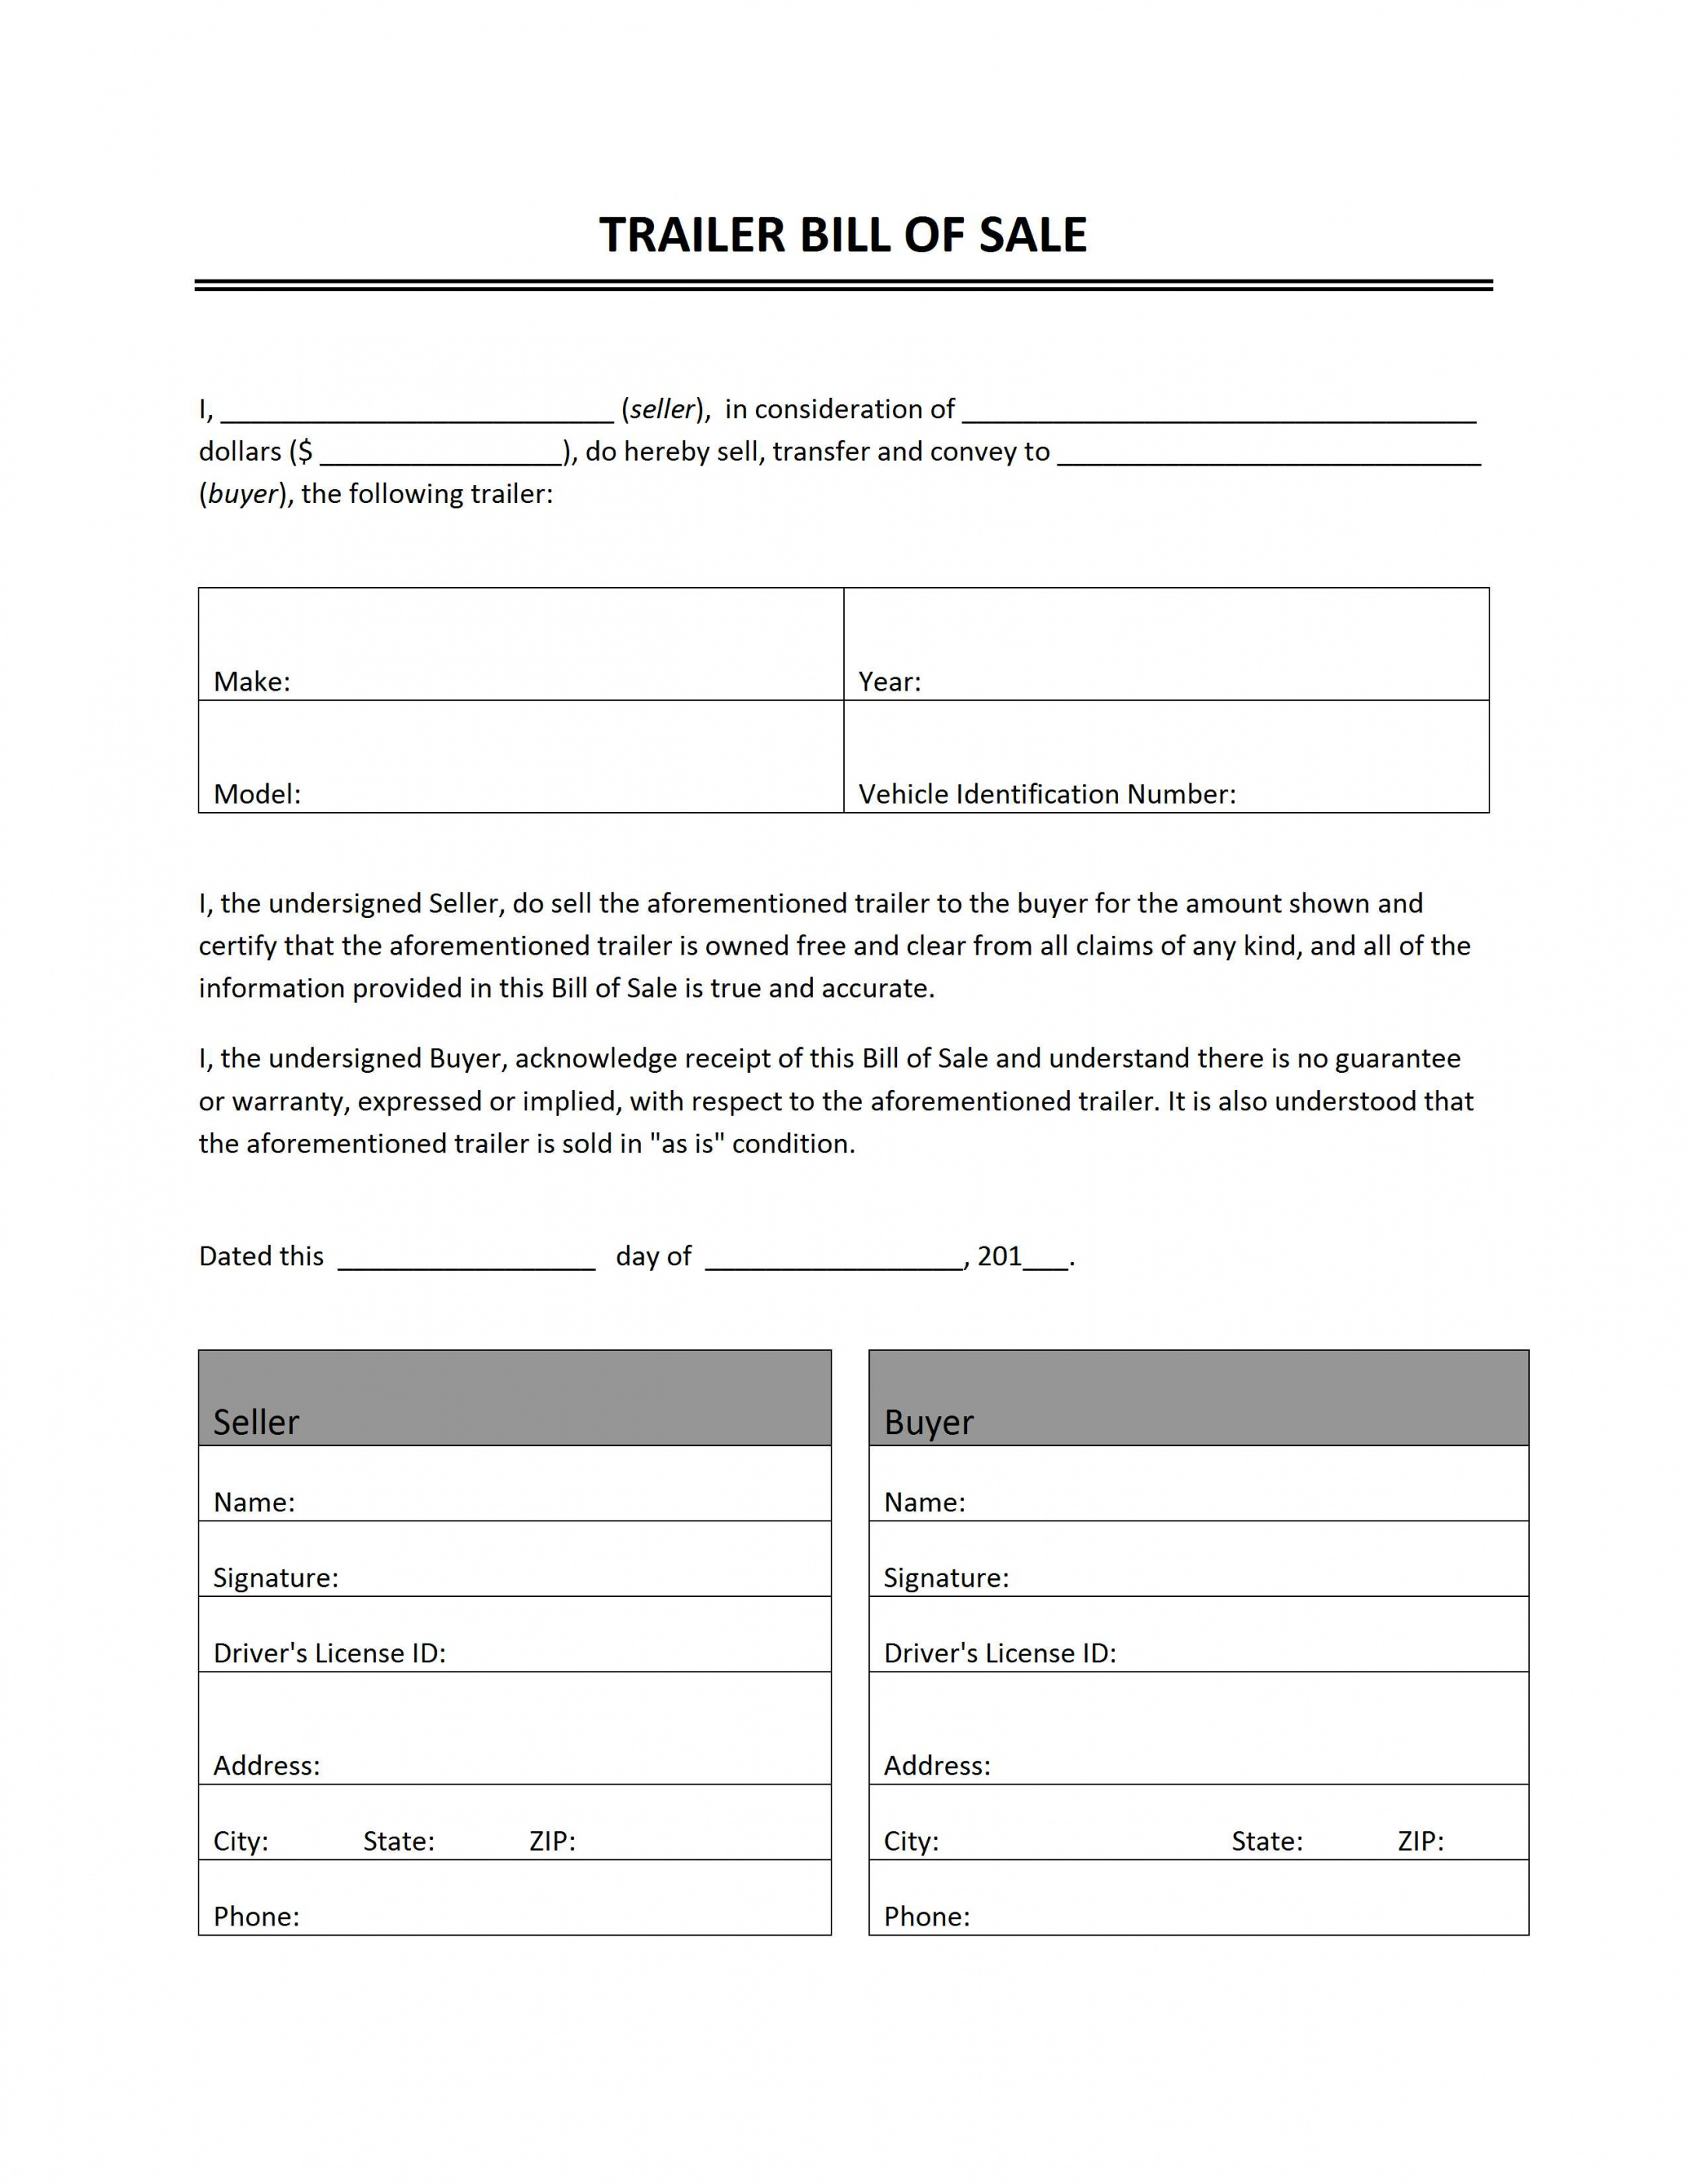 trailer bill of sale boat sale and purchase agreement template example